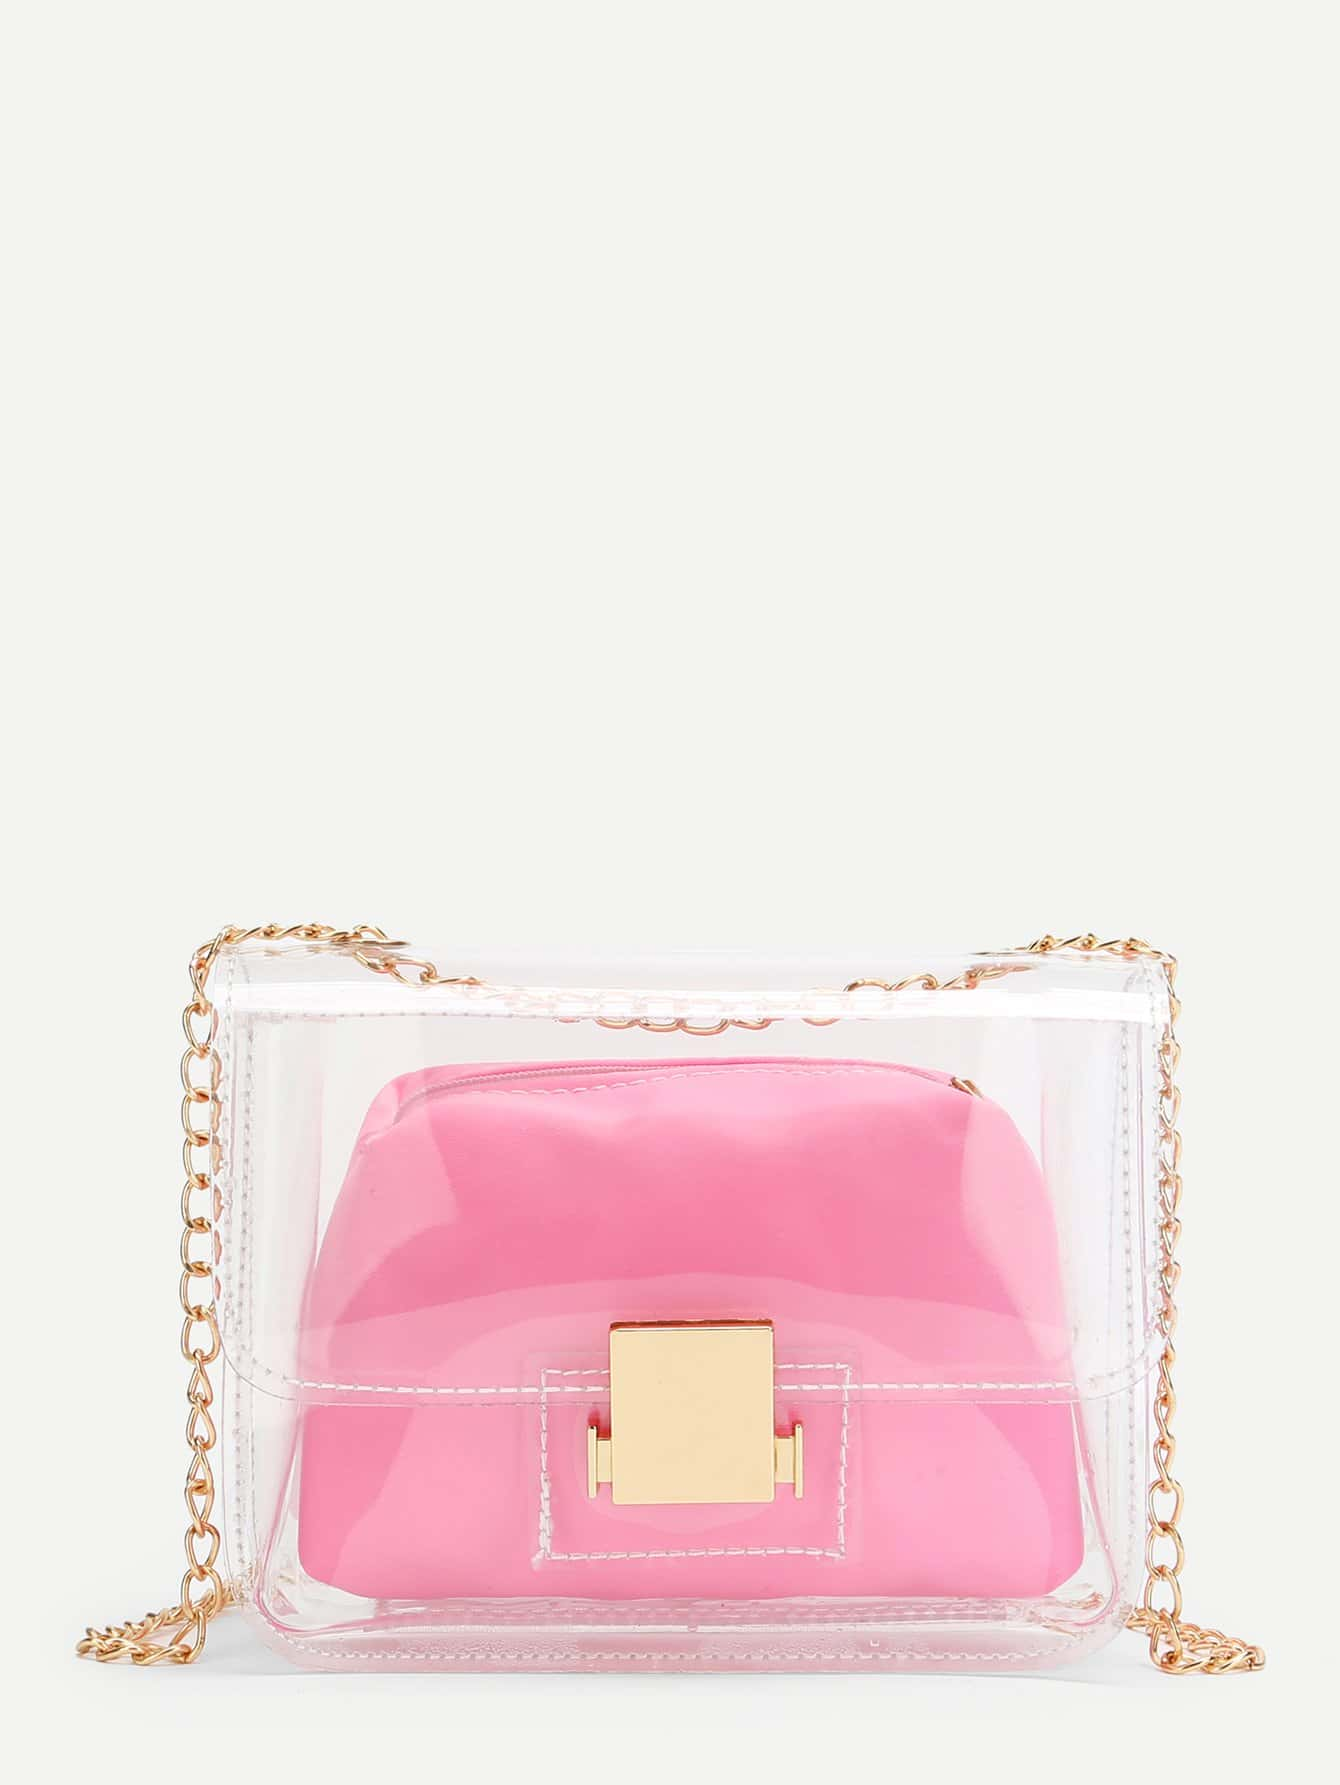 Clear Design Chain Bag With Inner Pouch clear design chain bag with inner pouch